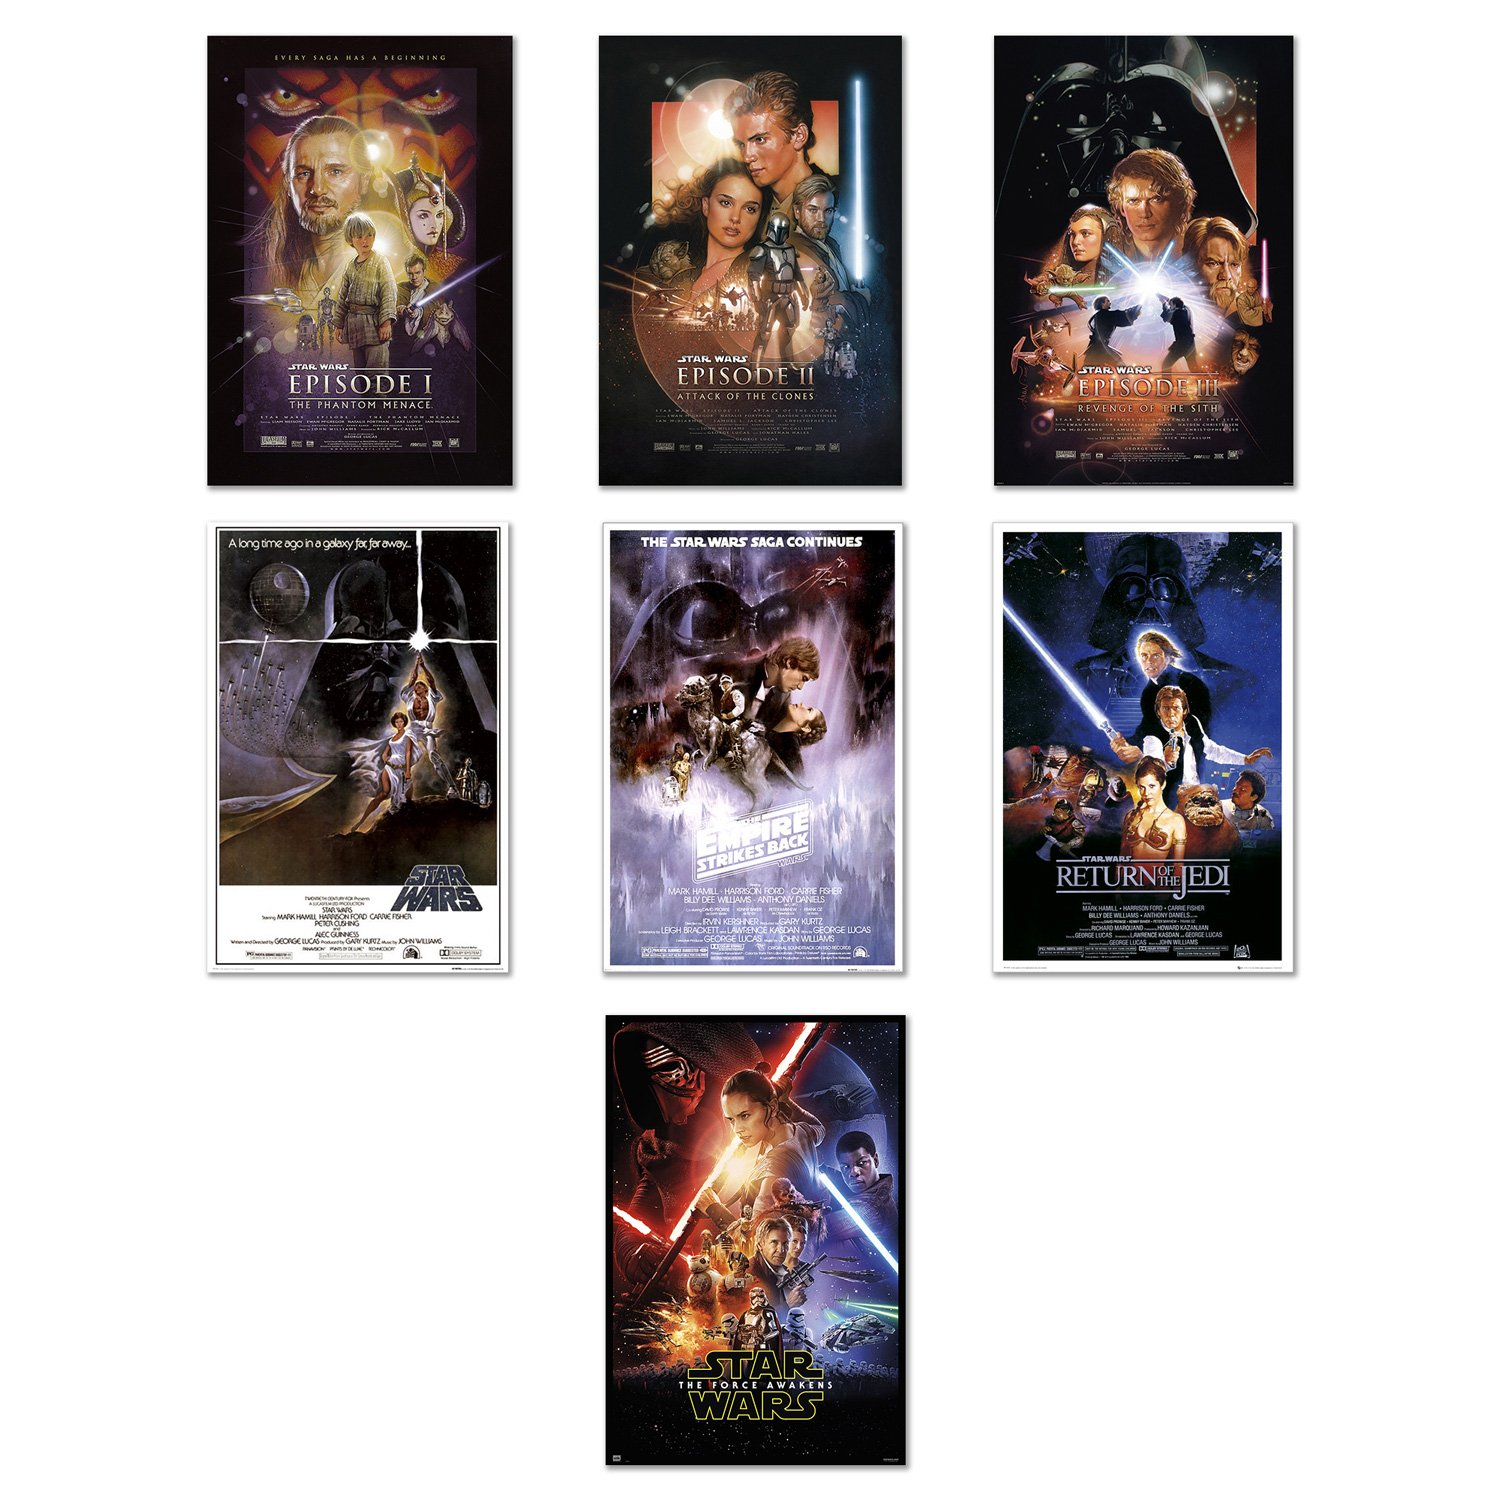 Star Wars: Episode I, II, III, IV, V, VI & VII - Movie Poster Set (7 Individual Full Size Movie Posters) (Size: 24'' x 36'' each) by POSTER STOP ONLINE